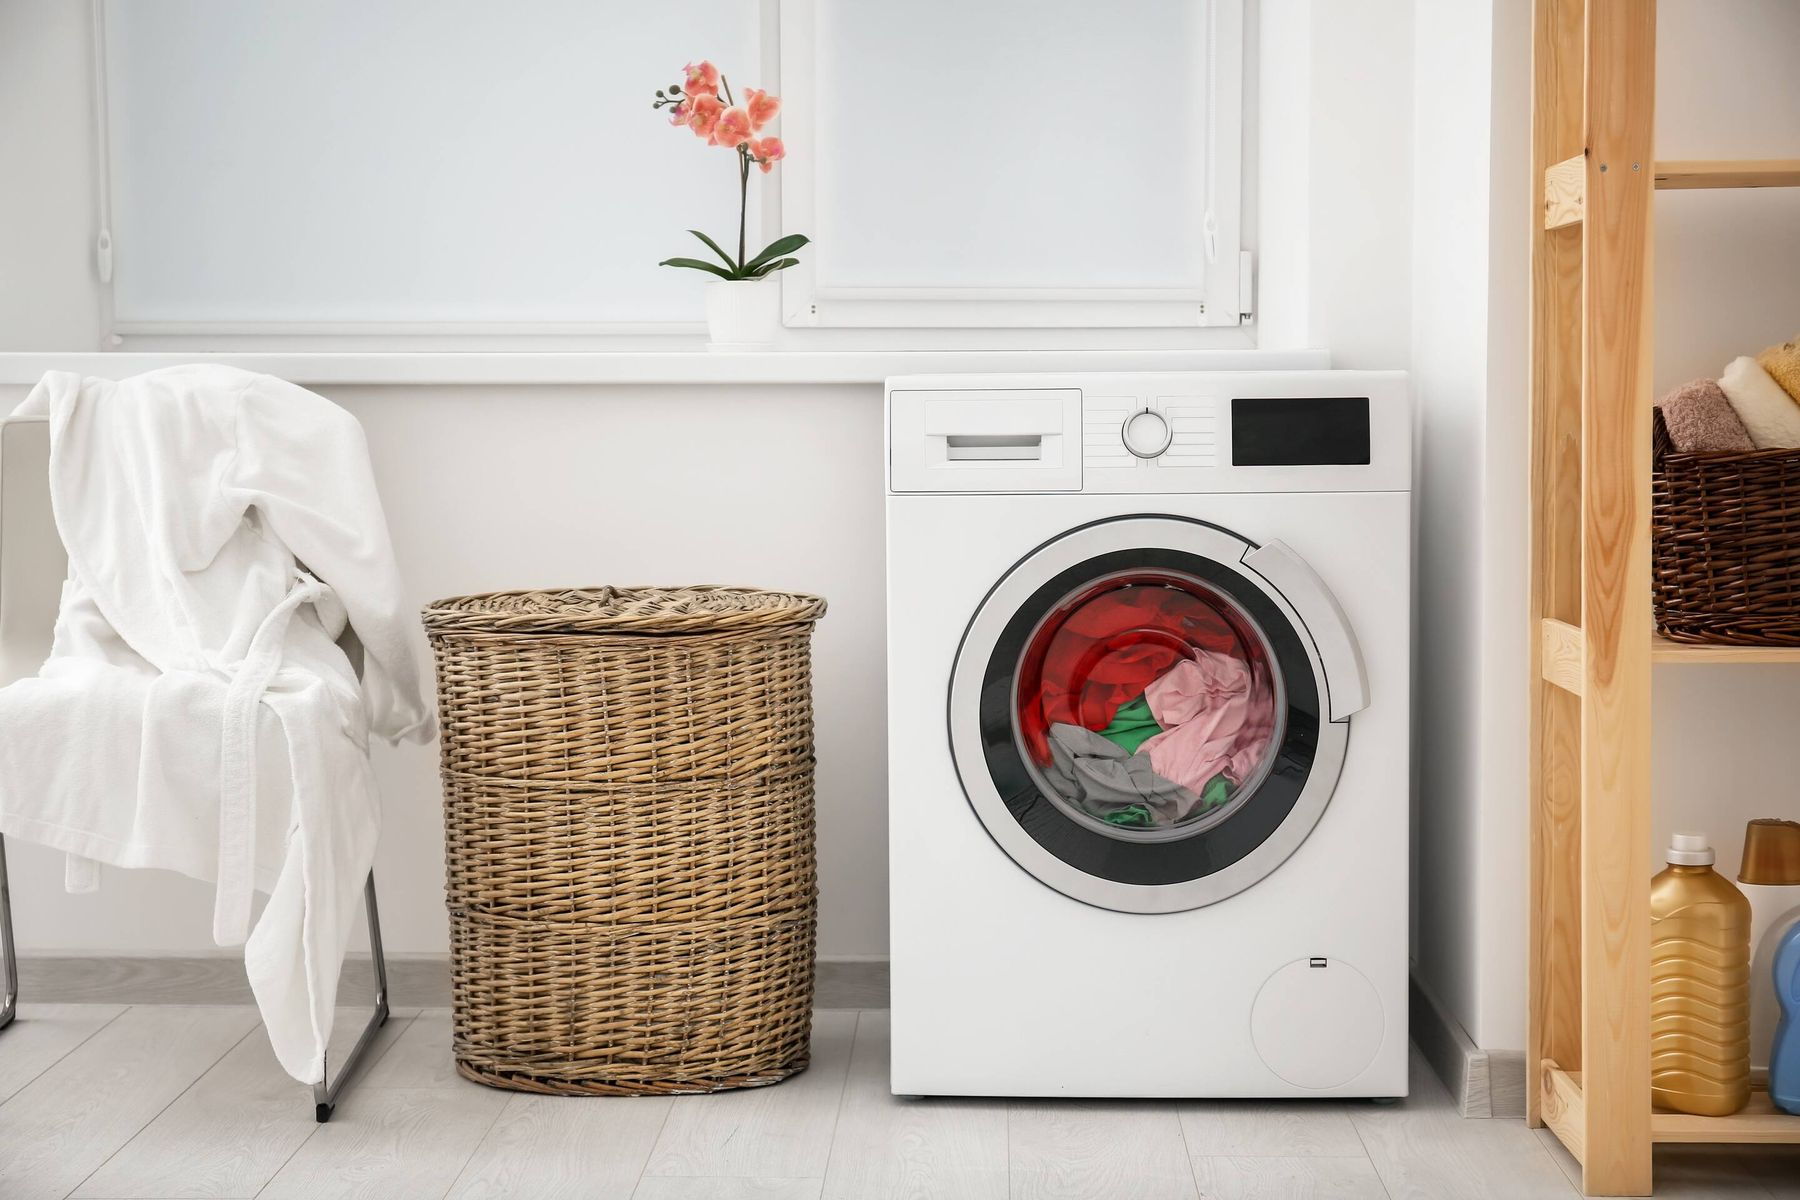 How to Use Washing Machine With Easy Instruction Guide | Cleanipedia